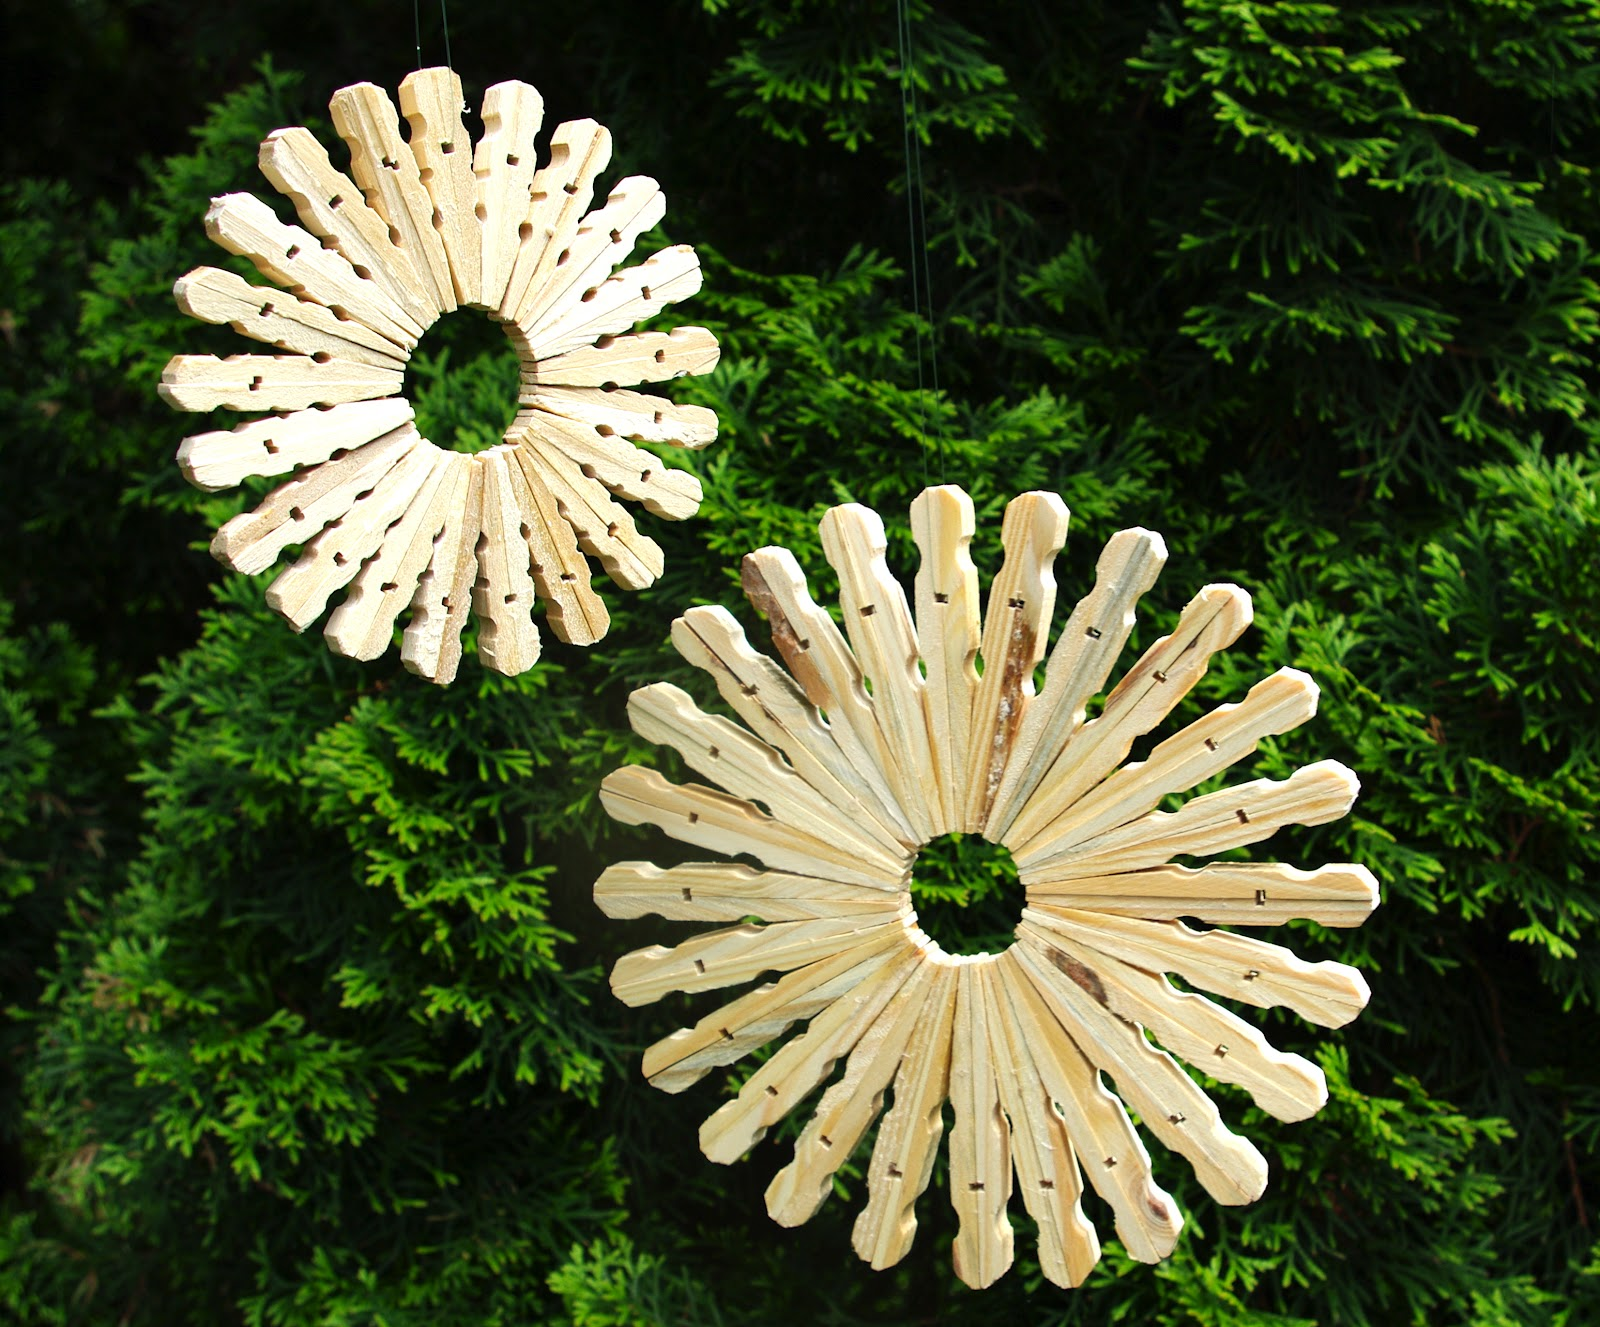 Snow Flakes Made with Wooden Clothes Pins